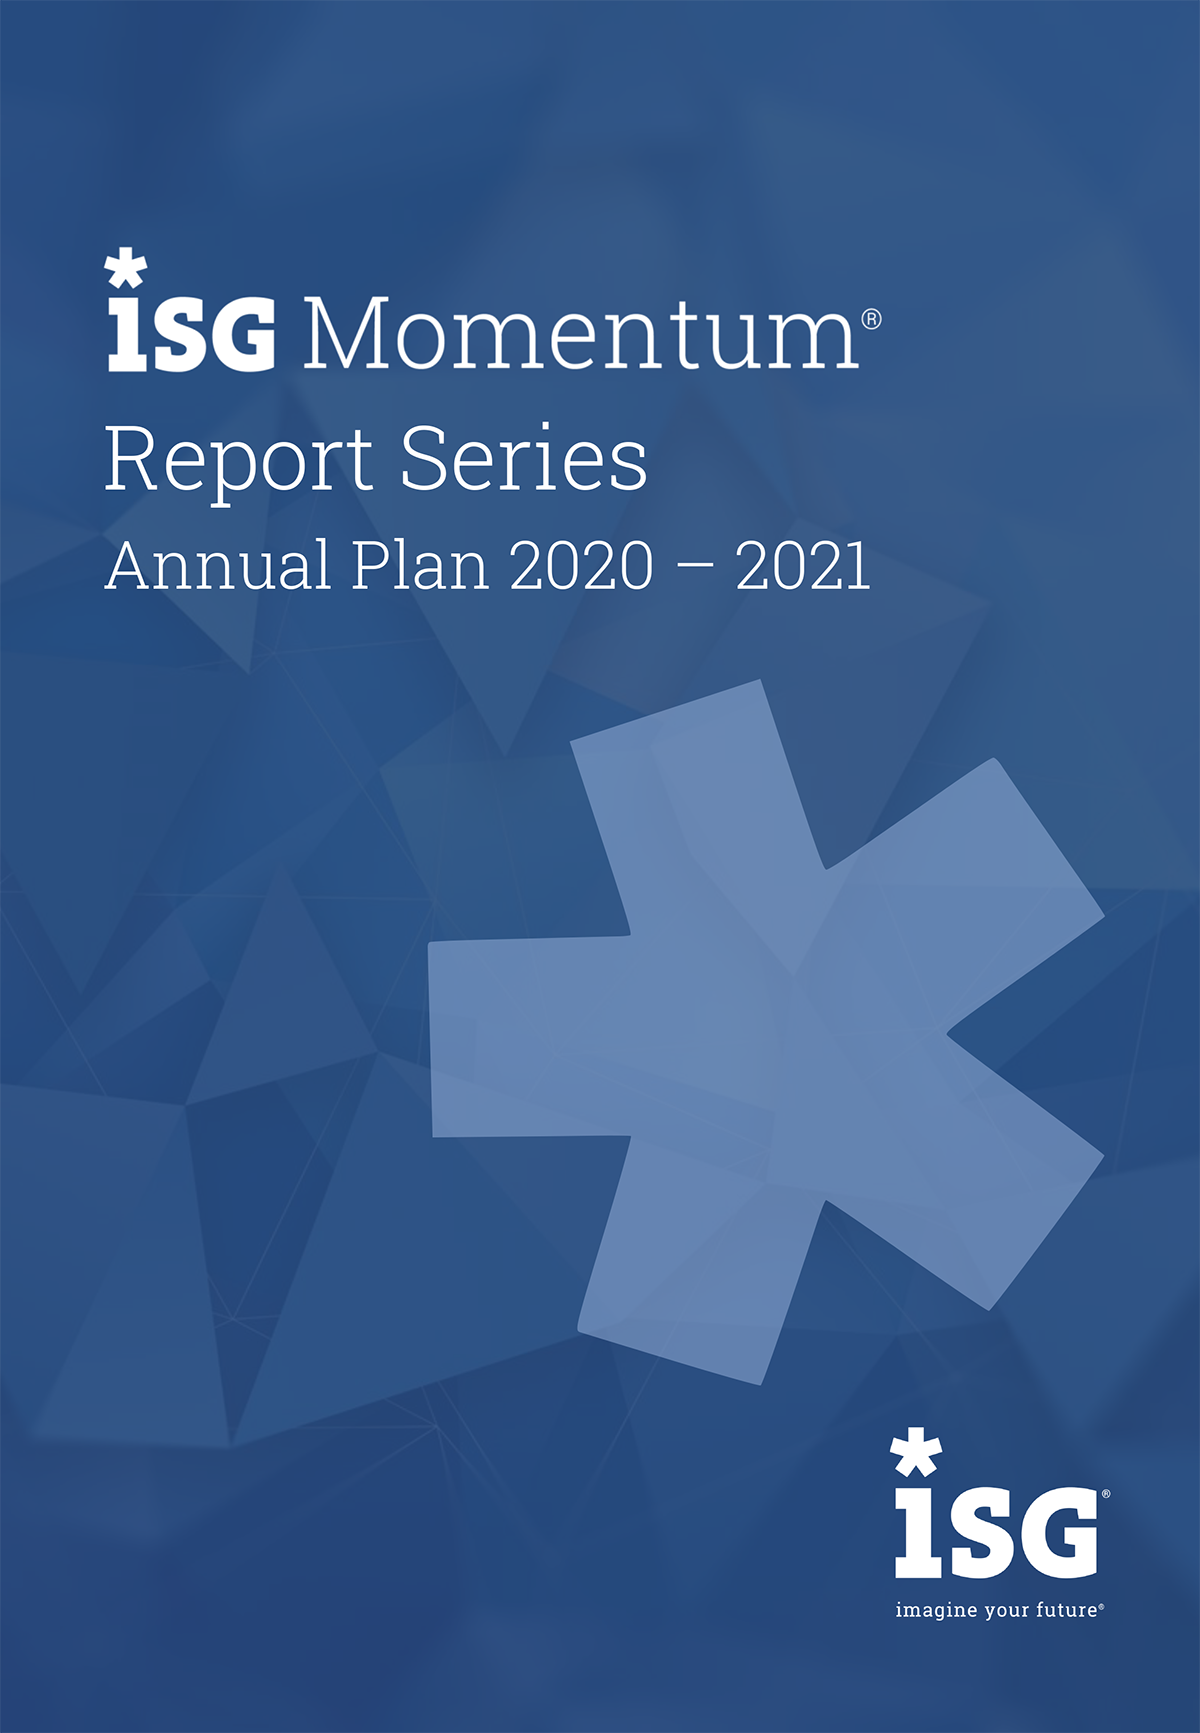 momentum-reports---annual-plan-2020---2021-1